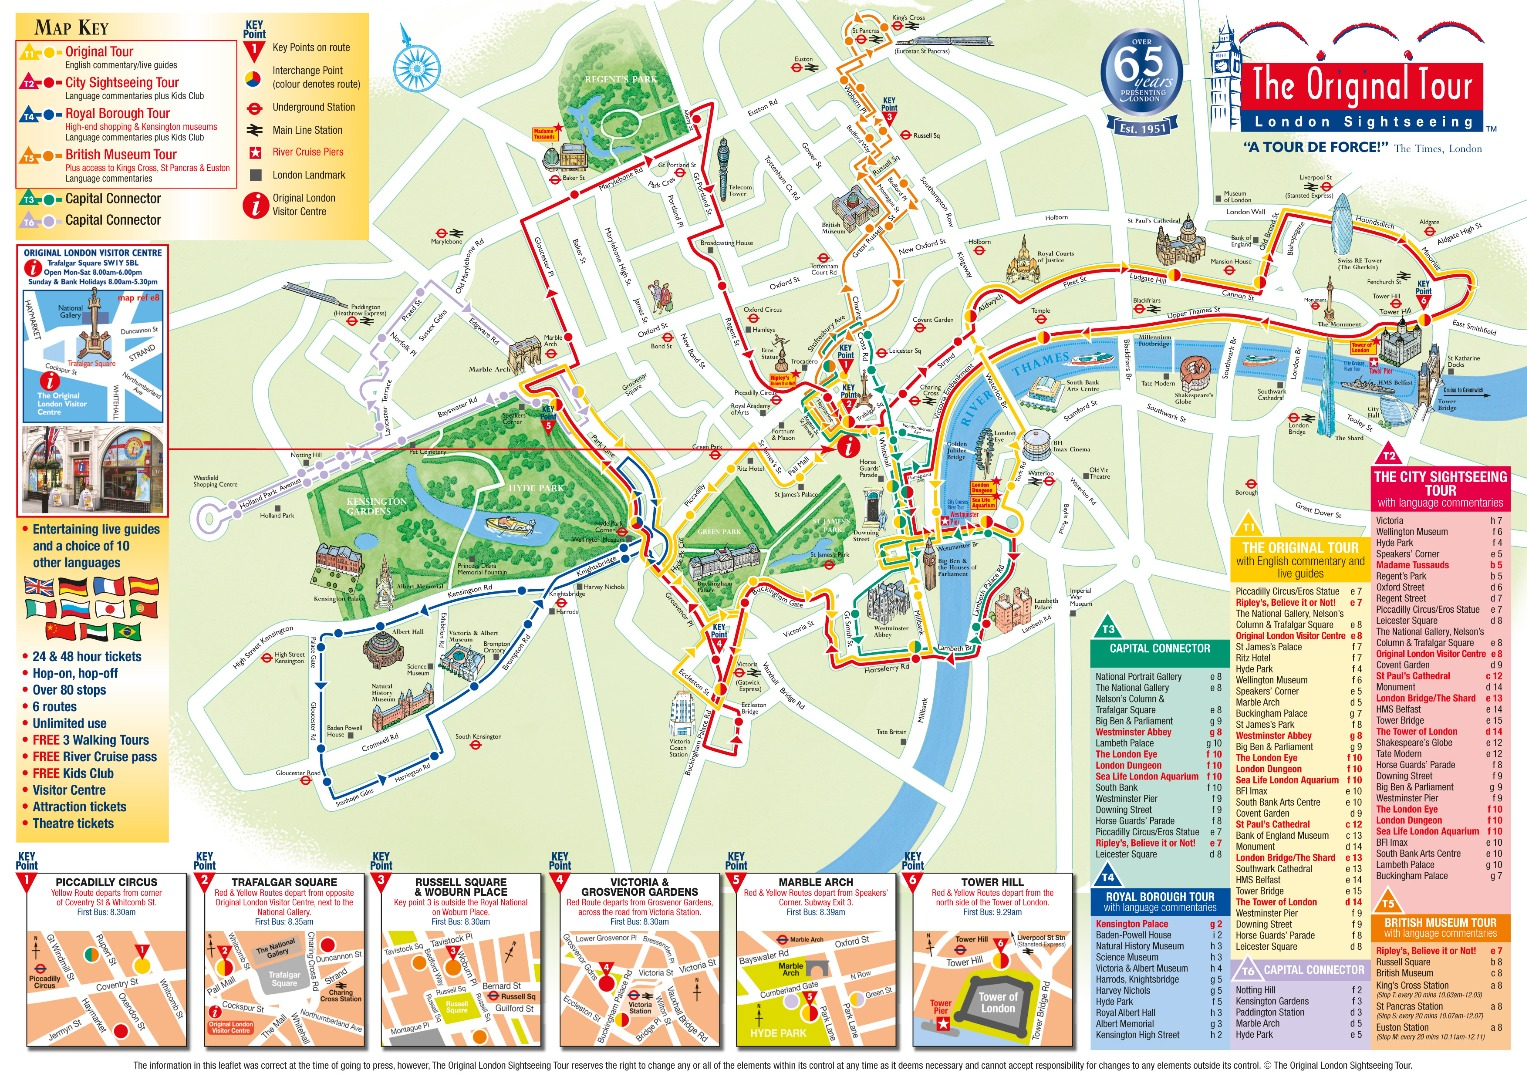 10 Best London Hop On Hop Off Tours Compare Bus Tours Maps Pdf Reviews 2021